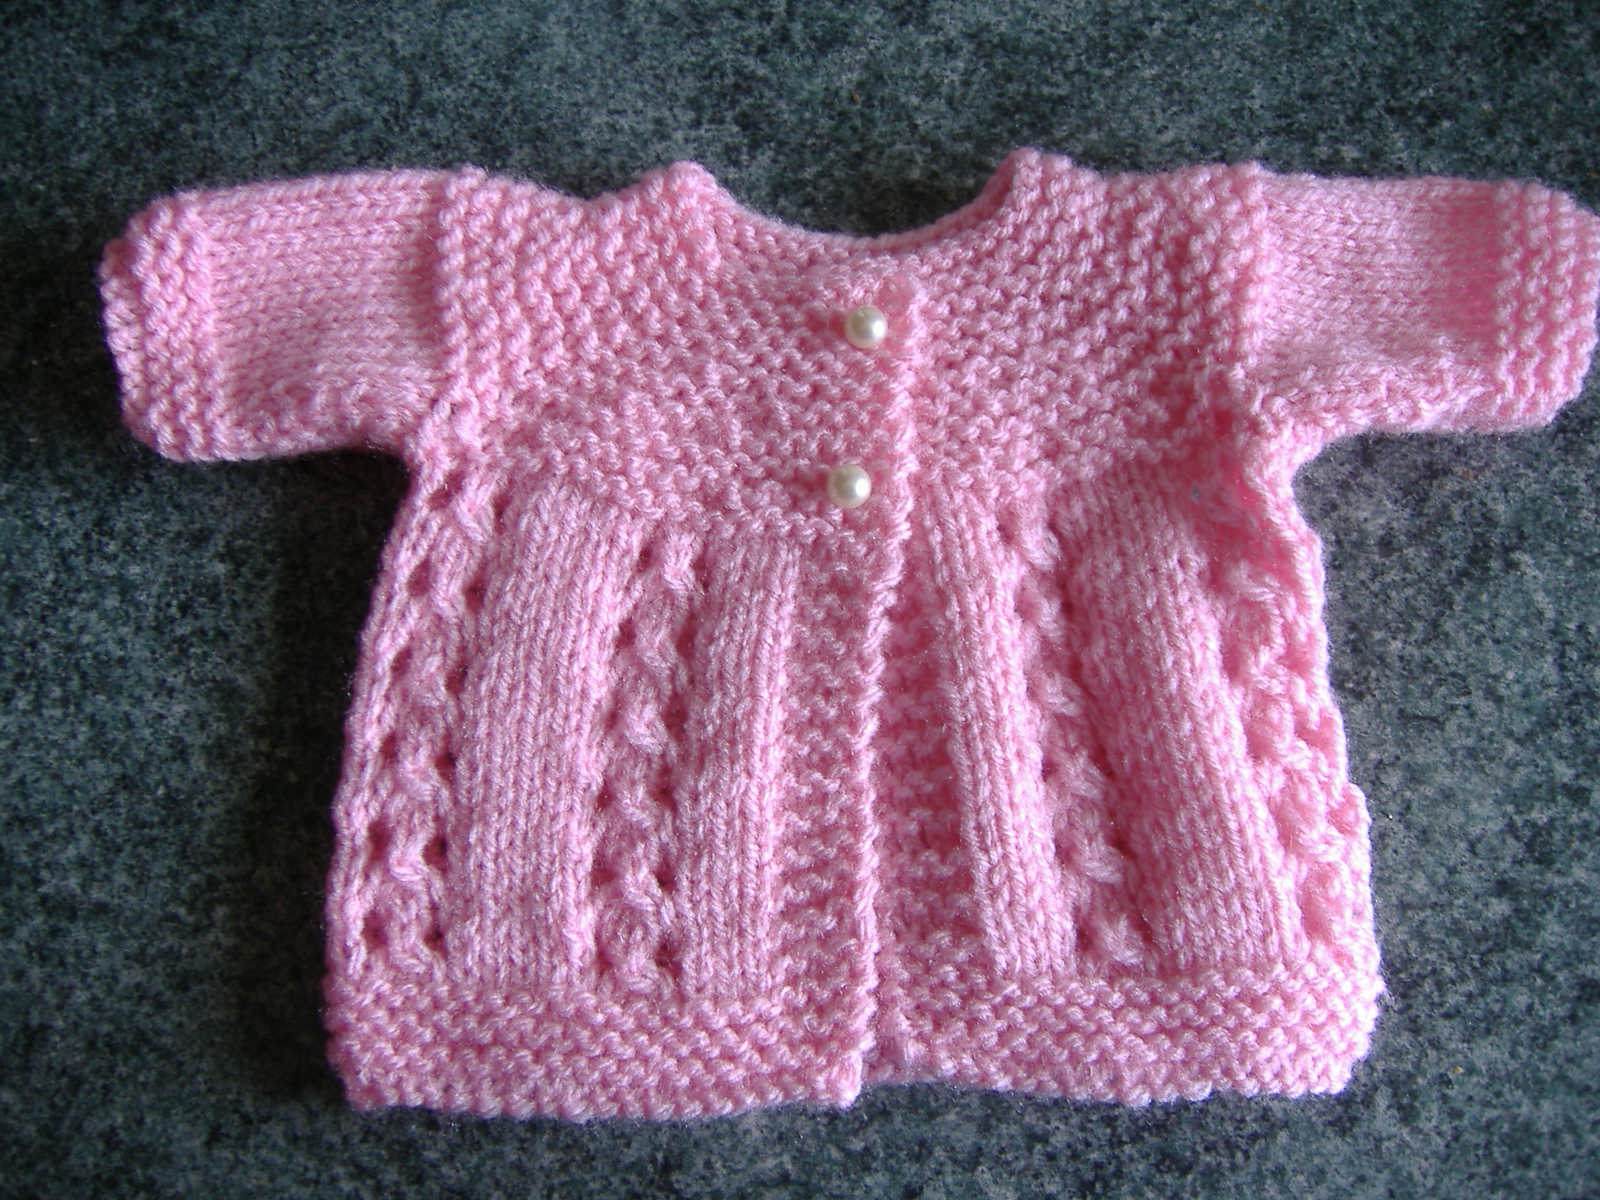 Knitting Pattern Baby Jacket : mariannas lazy daisy days: Premature Baby Jackets